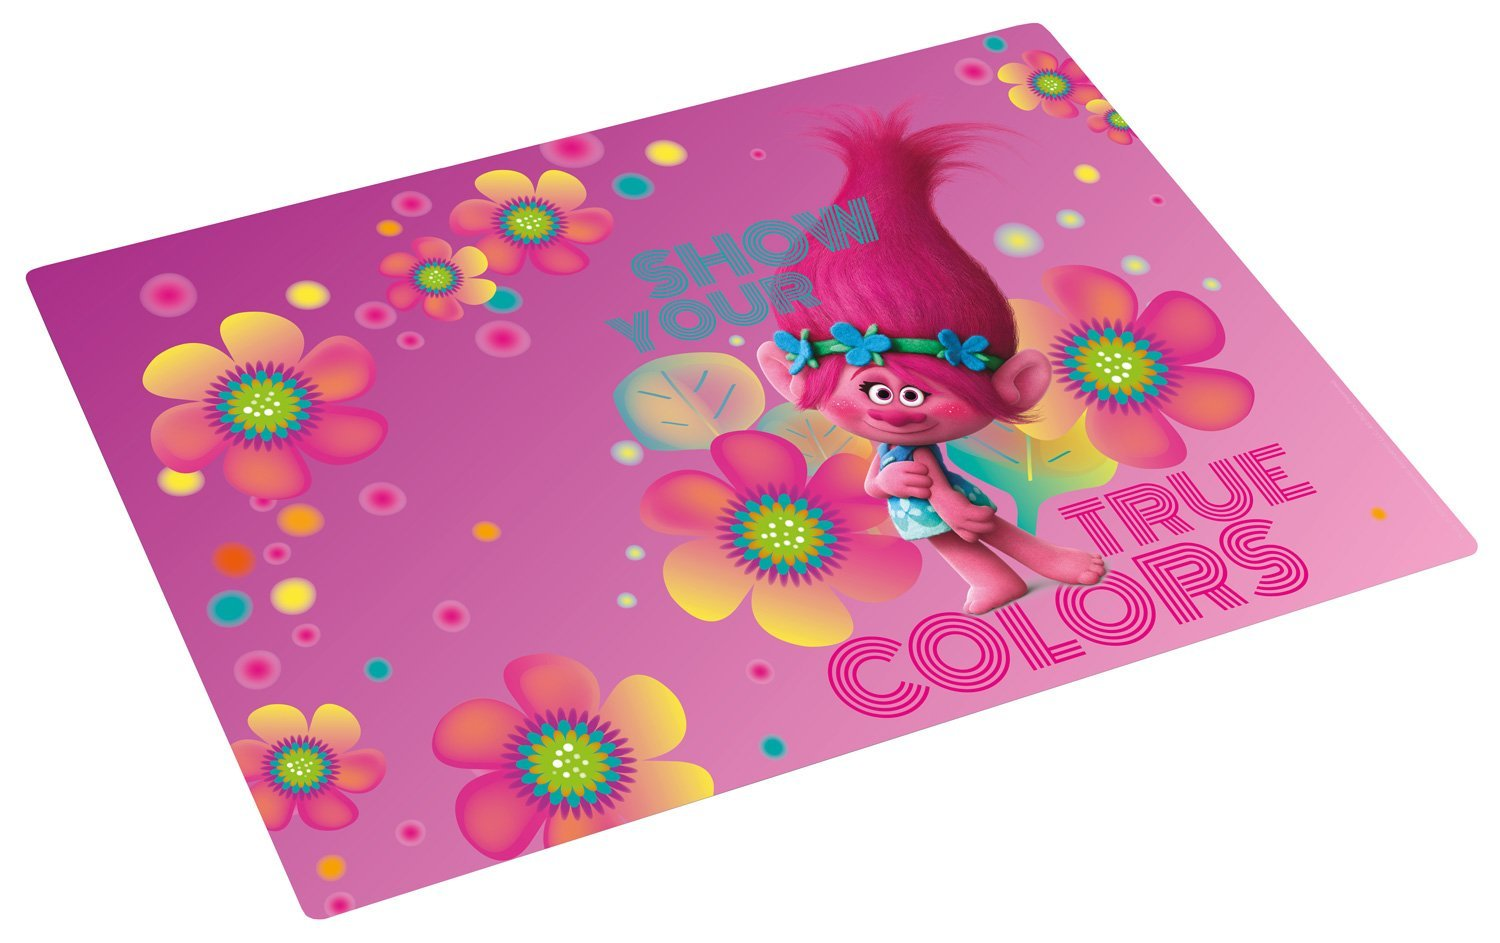 p:os 25833  Placemat Dreamworks Trolls, Approx. 42  x 29  cm Approx. 42 x 29 cm